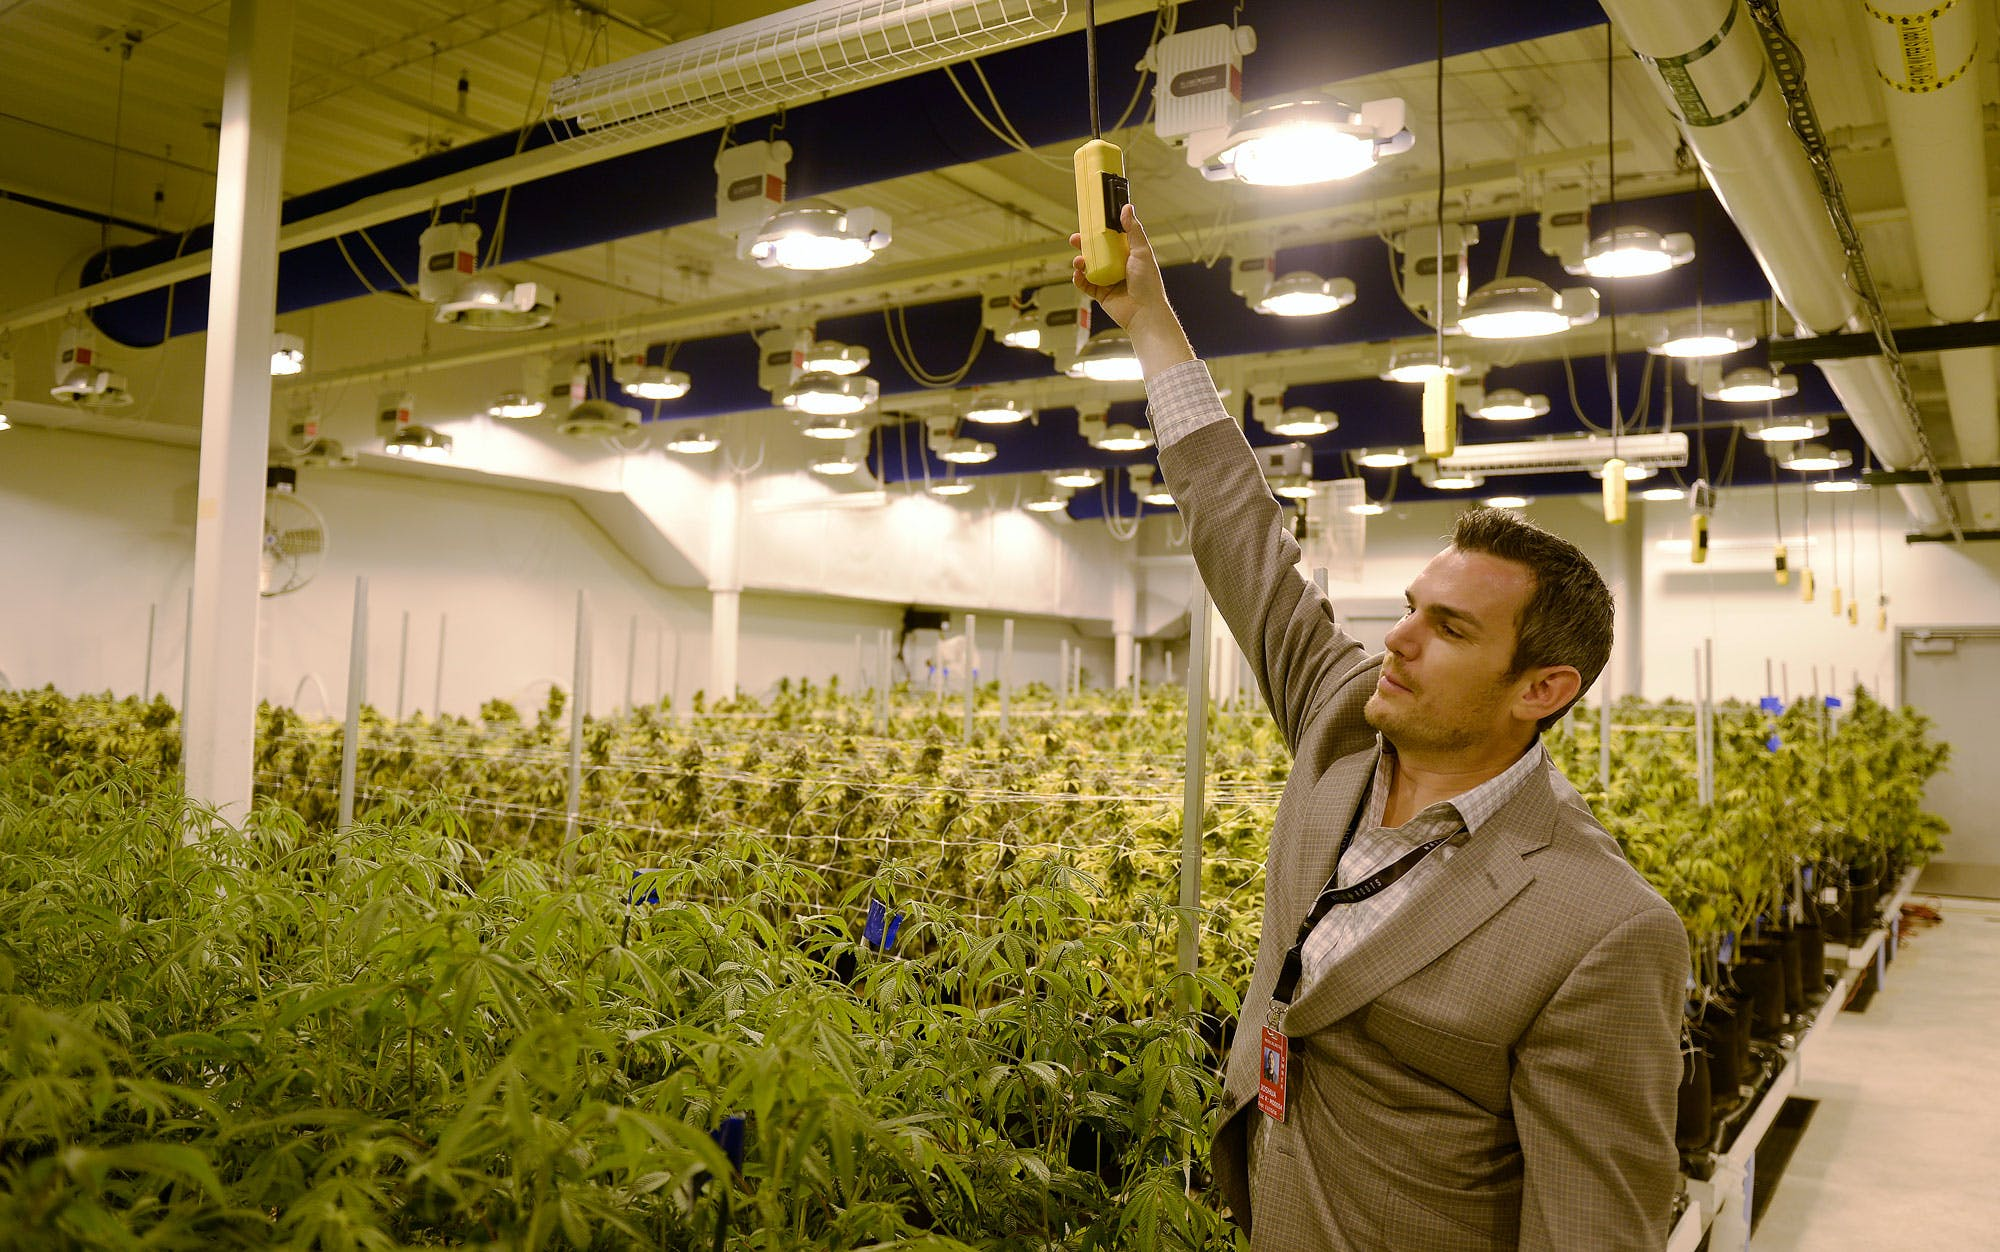 2 Inside the Debate Over Whether Home Growing Should Be Legal Inside the Debate Over Whether Home Growing Should Be Legal